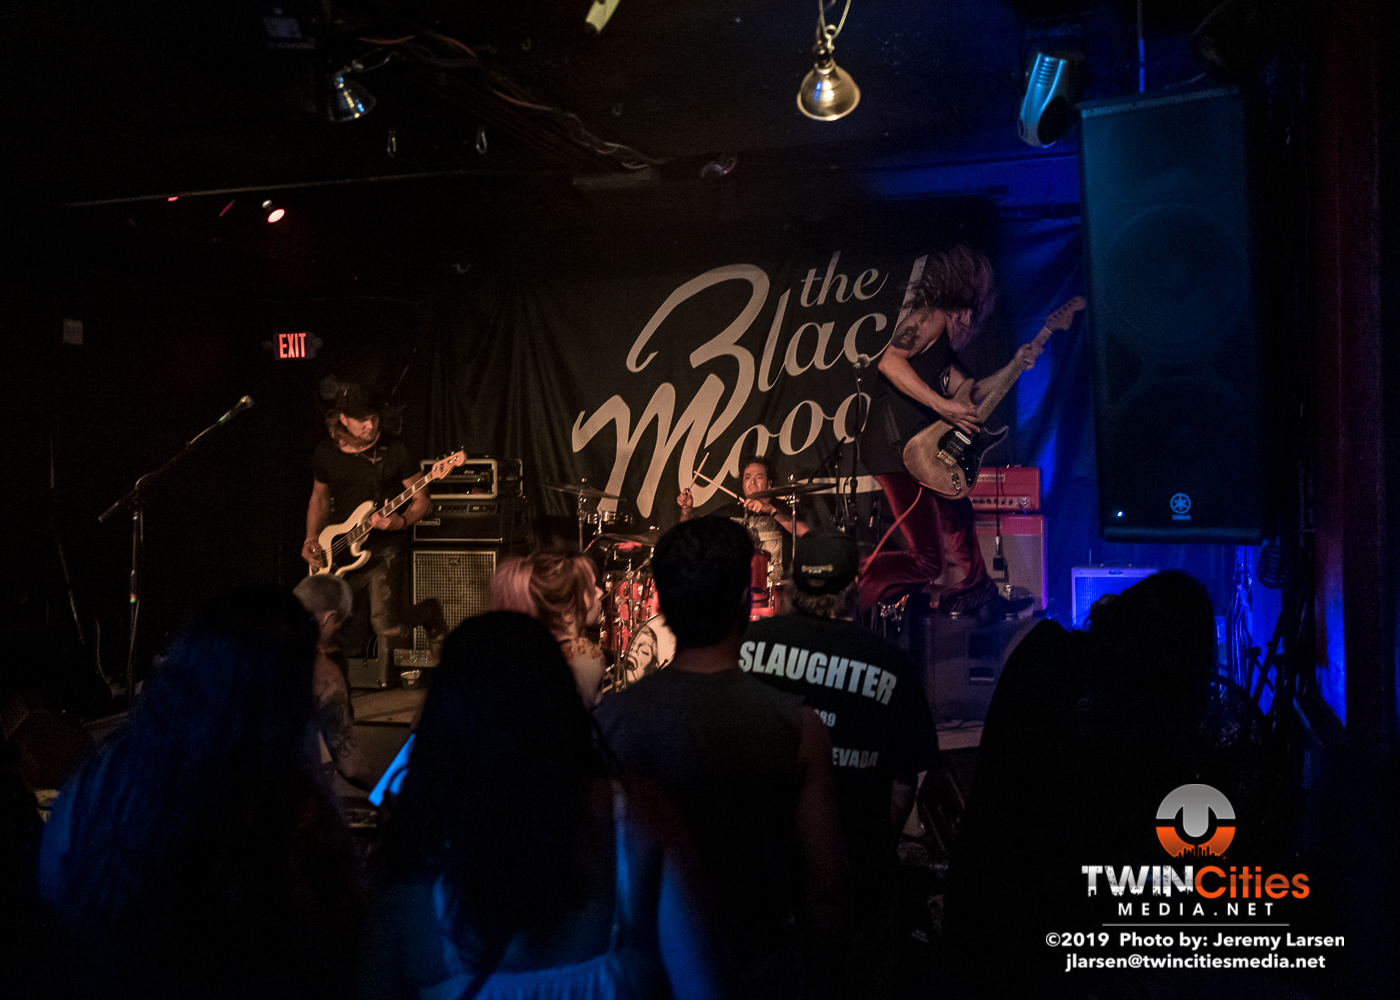 20190718-The-Black-Moods-The-Whats-Up-Lounge-16